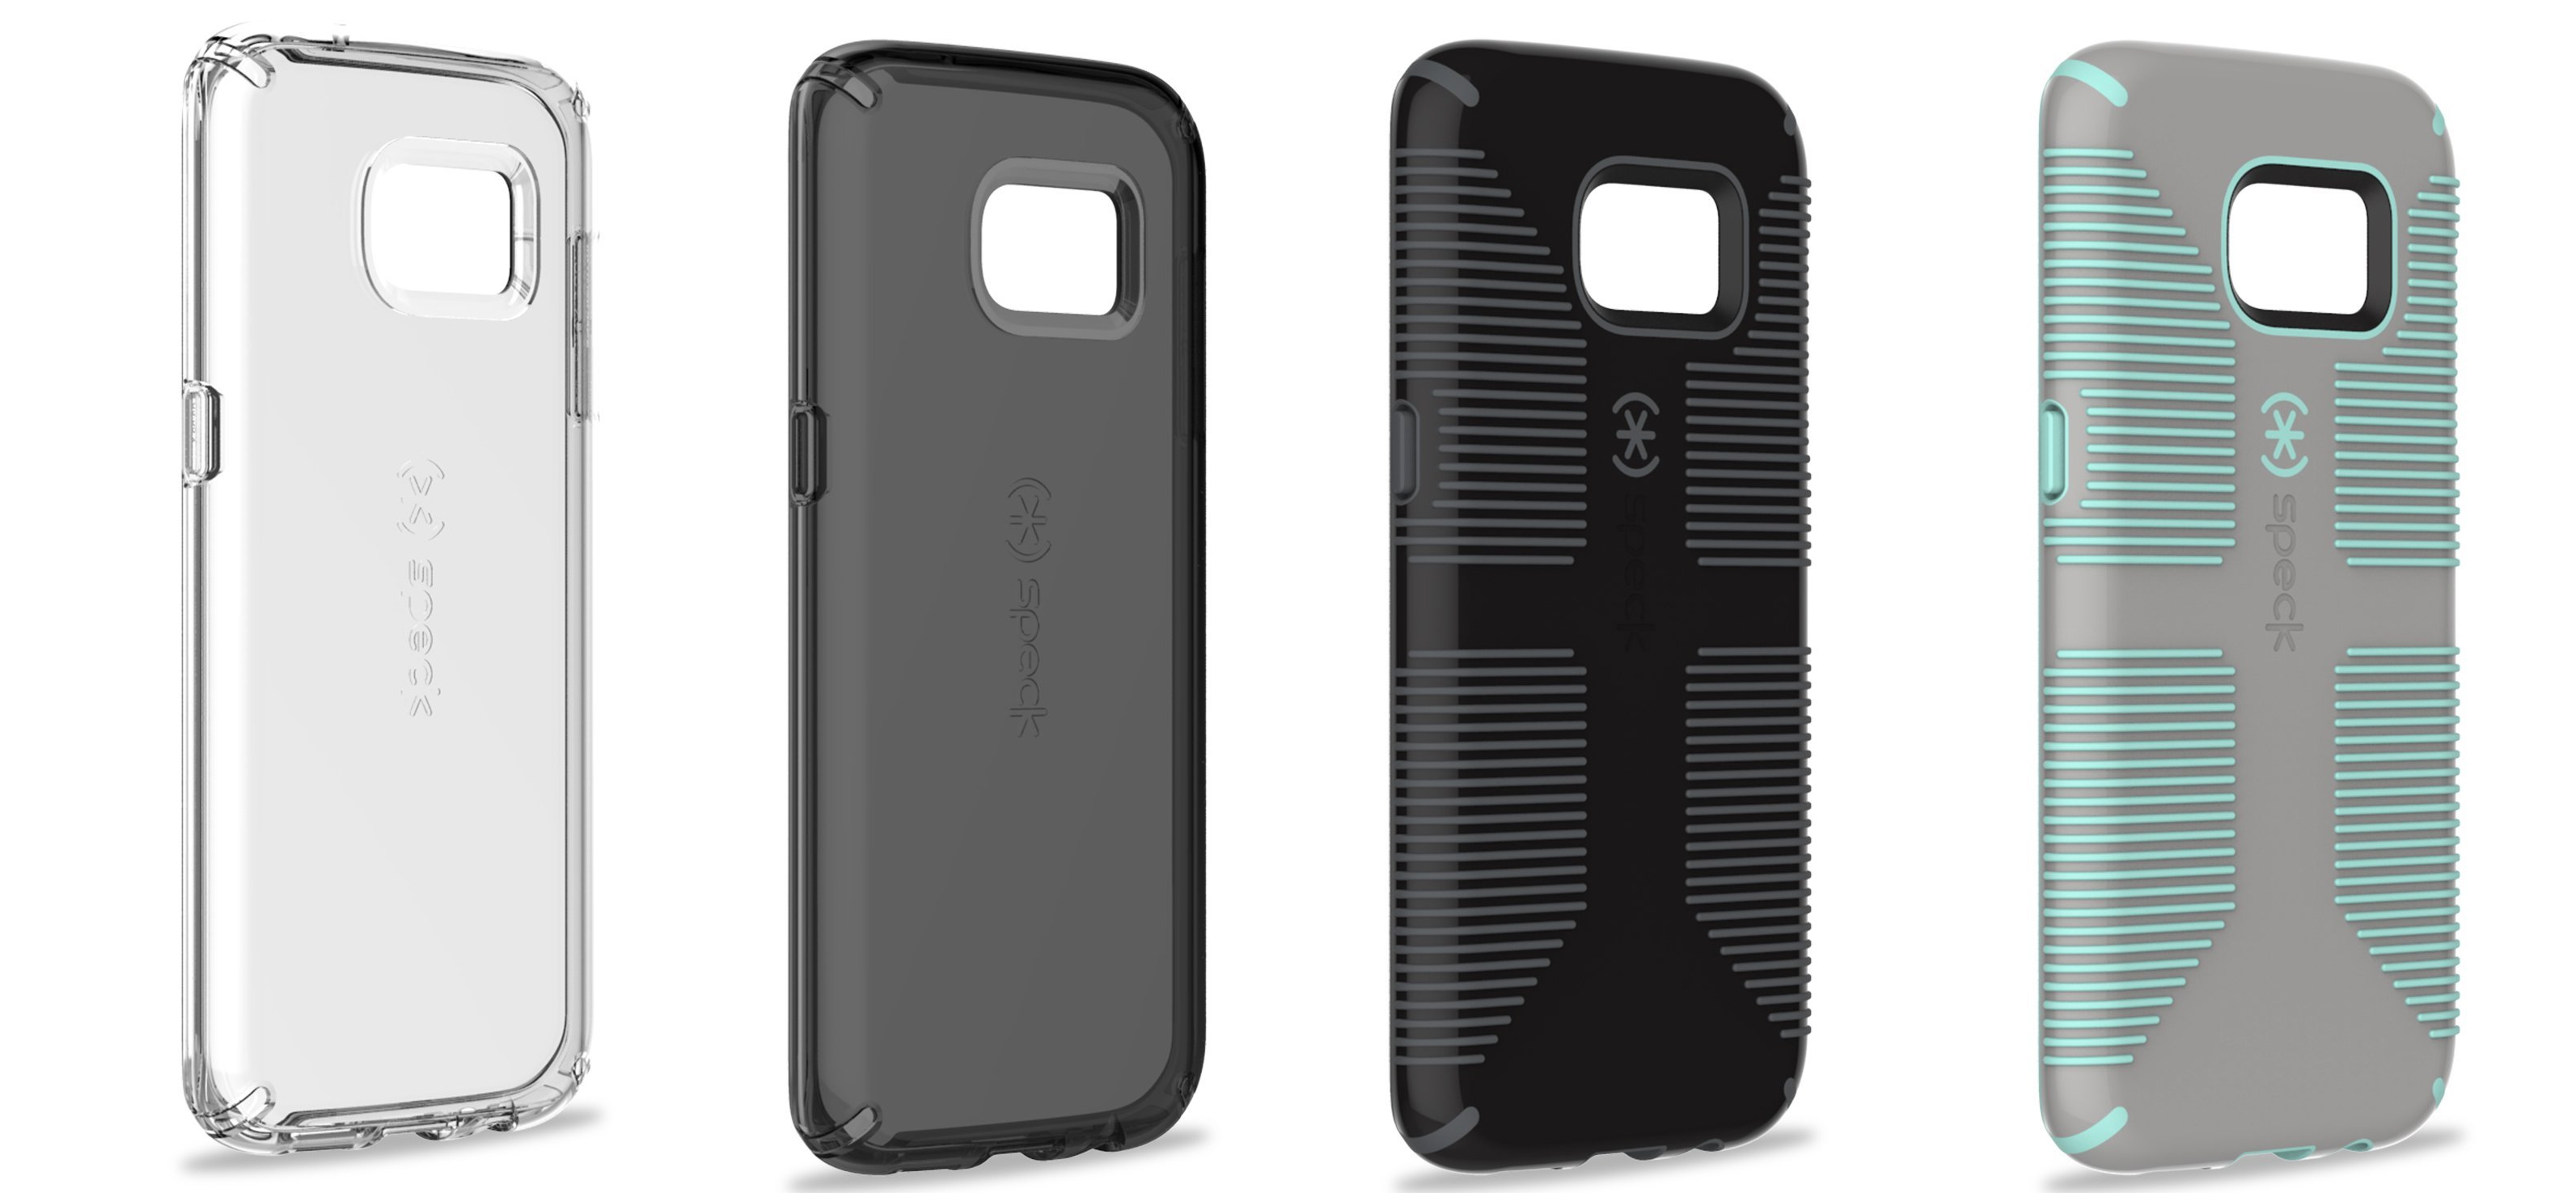 Speck Products Samsung Galaxy S7 Edge Military Protective Case